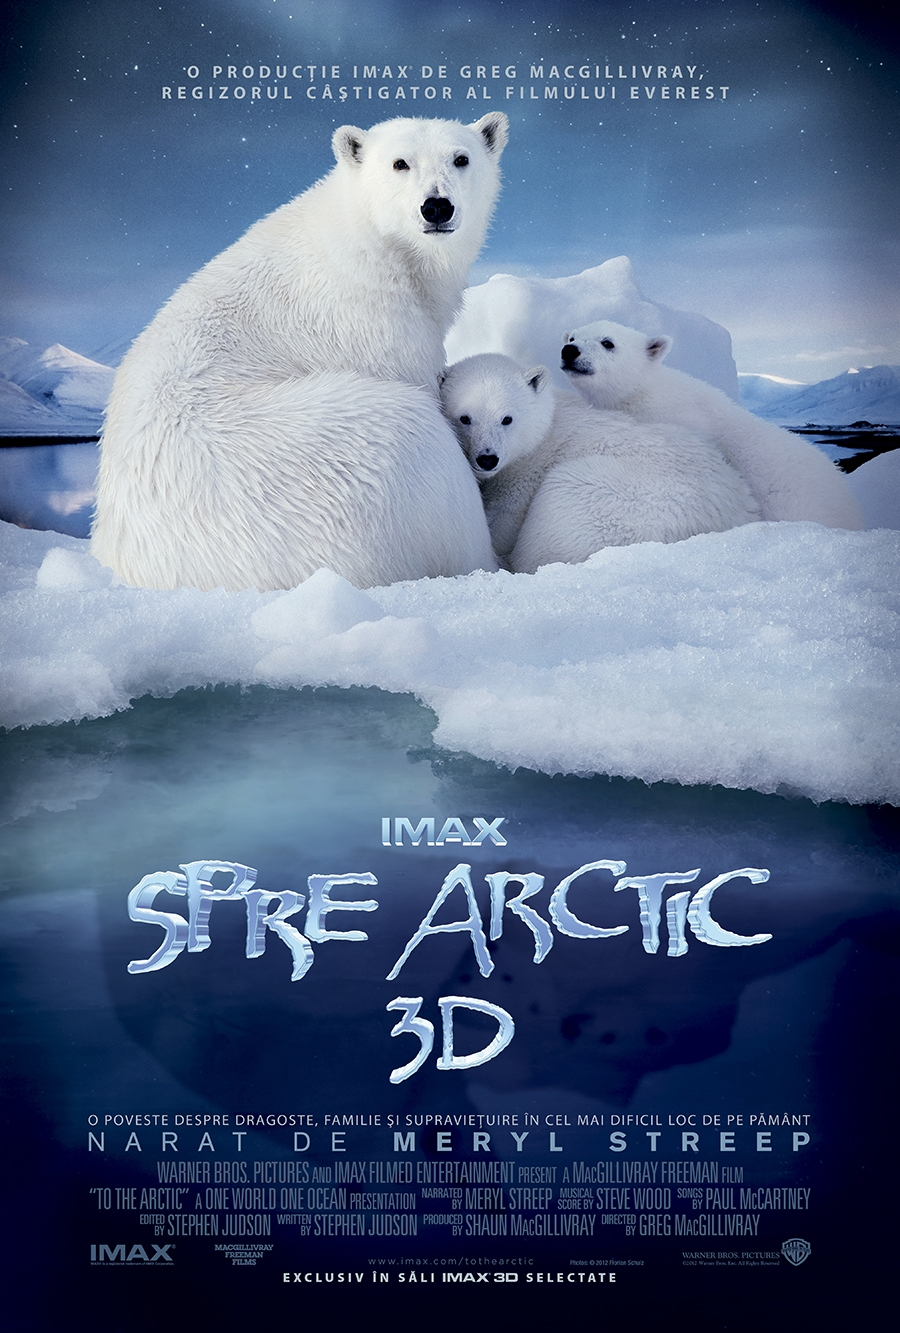 To the Arctic 3D (2012)